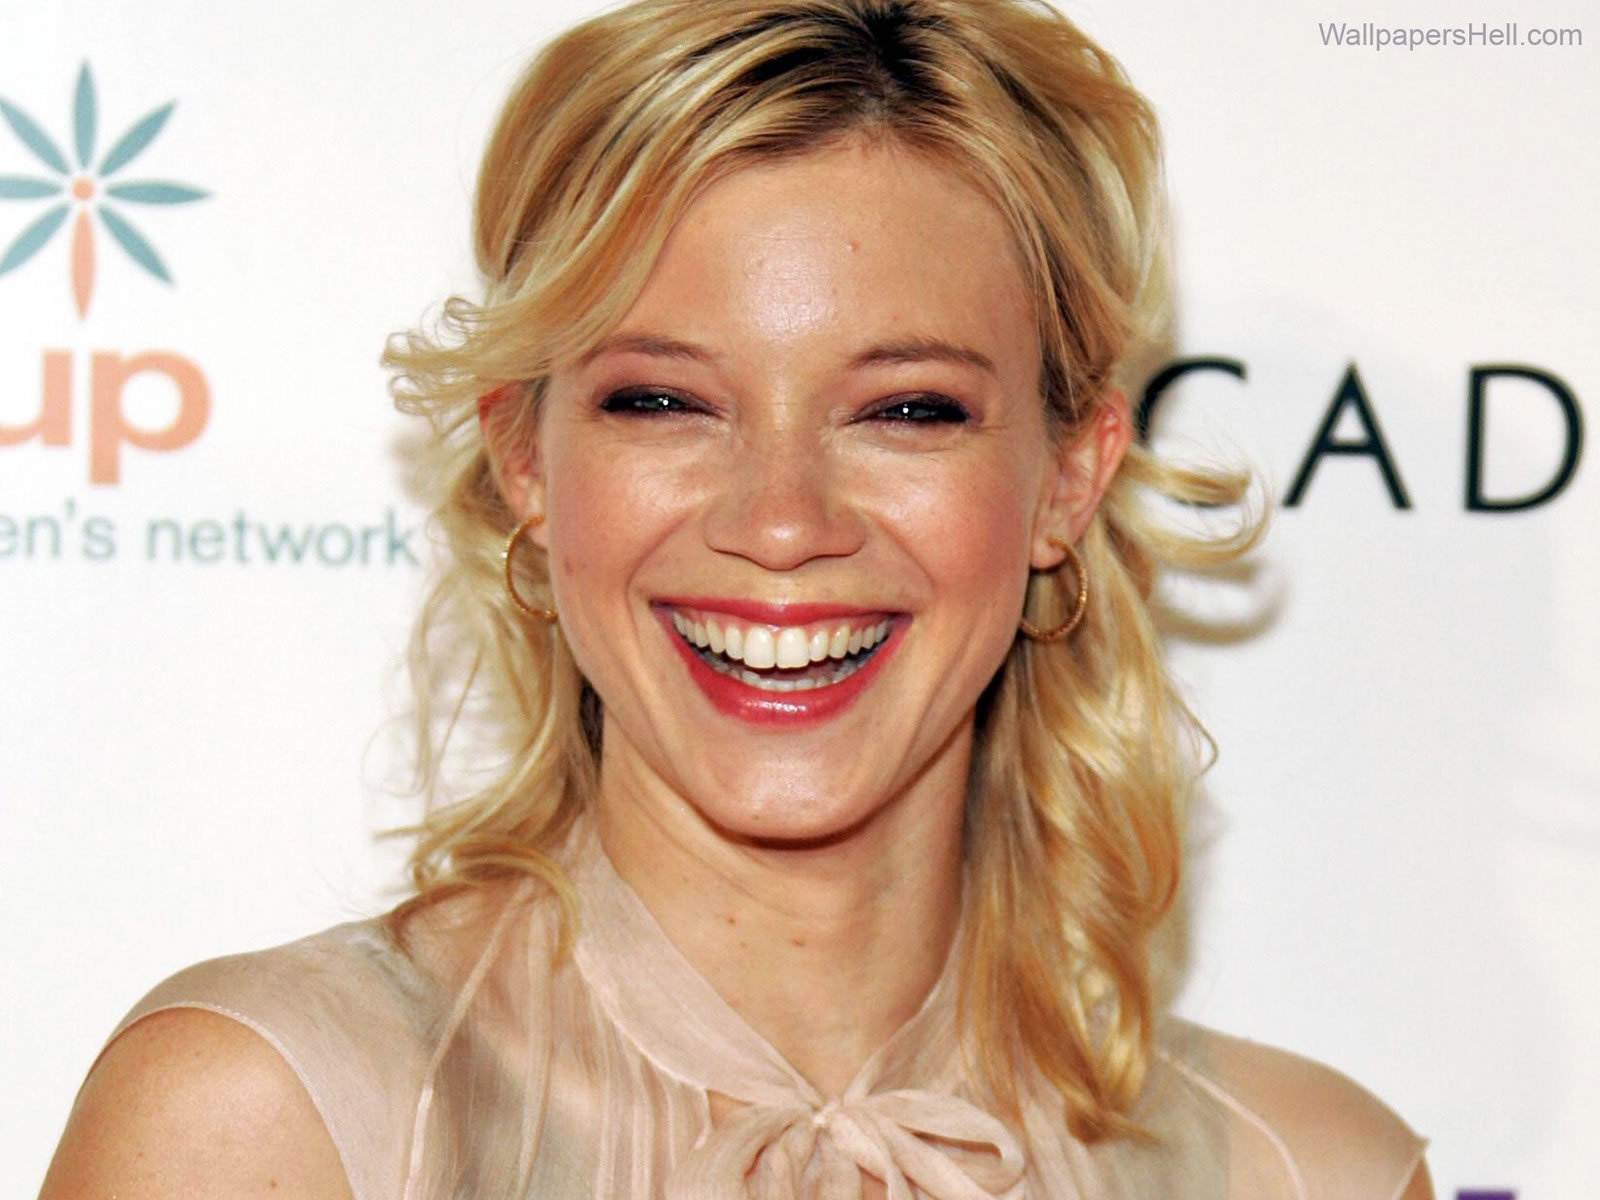 Amy Smart Wallpapers Images Photos Pictures Backgrounds Vanessa Hudgens Wiki